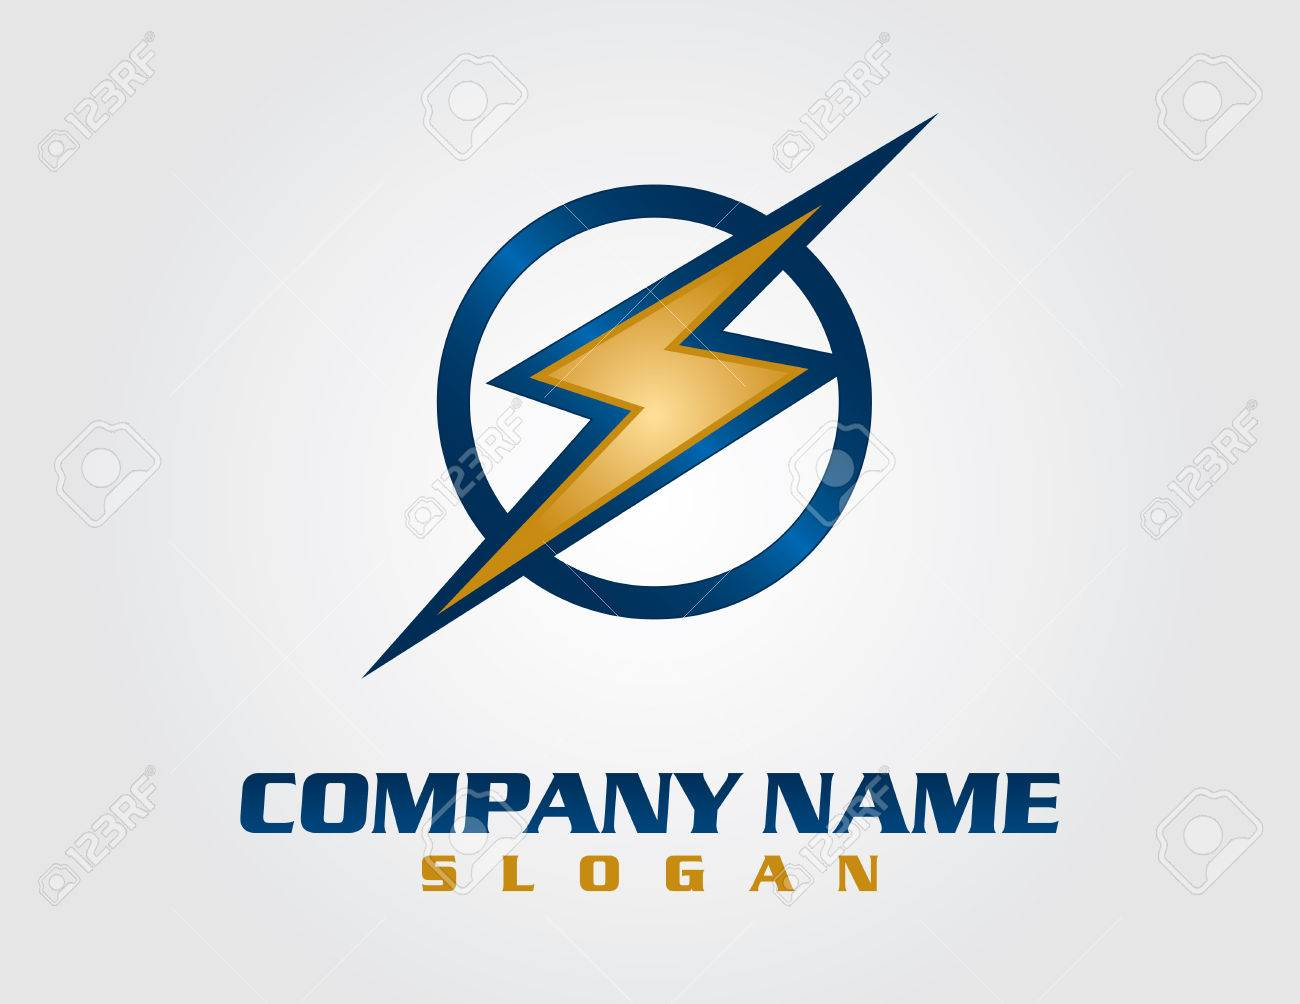 Electrical Company Logo Royalty Free Cliparts, Vectors, And Stock ...